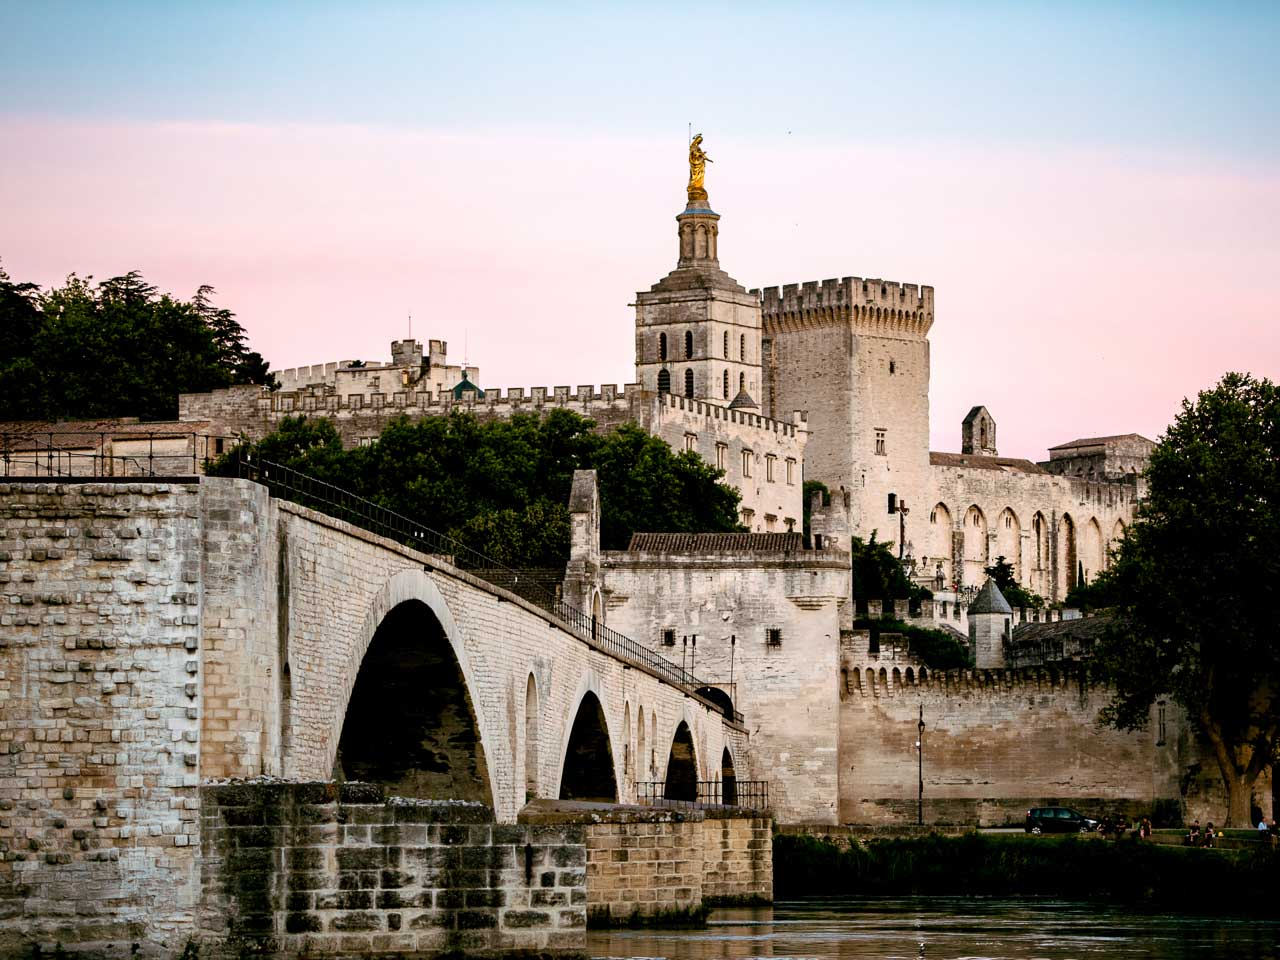 The Beautiful Pont D'Avignon the Palais des papes at sunset in the south of France.